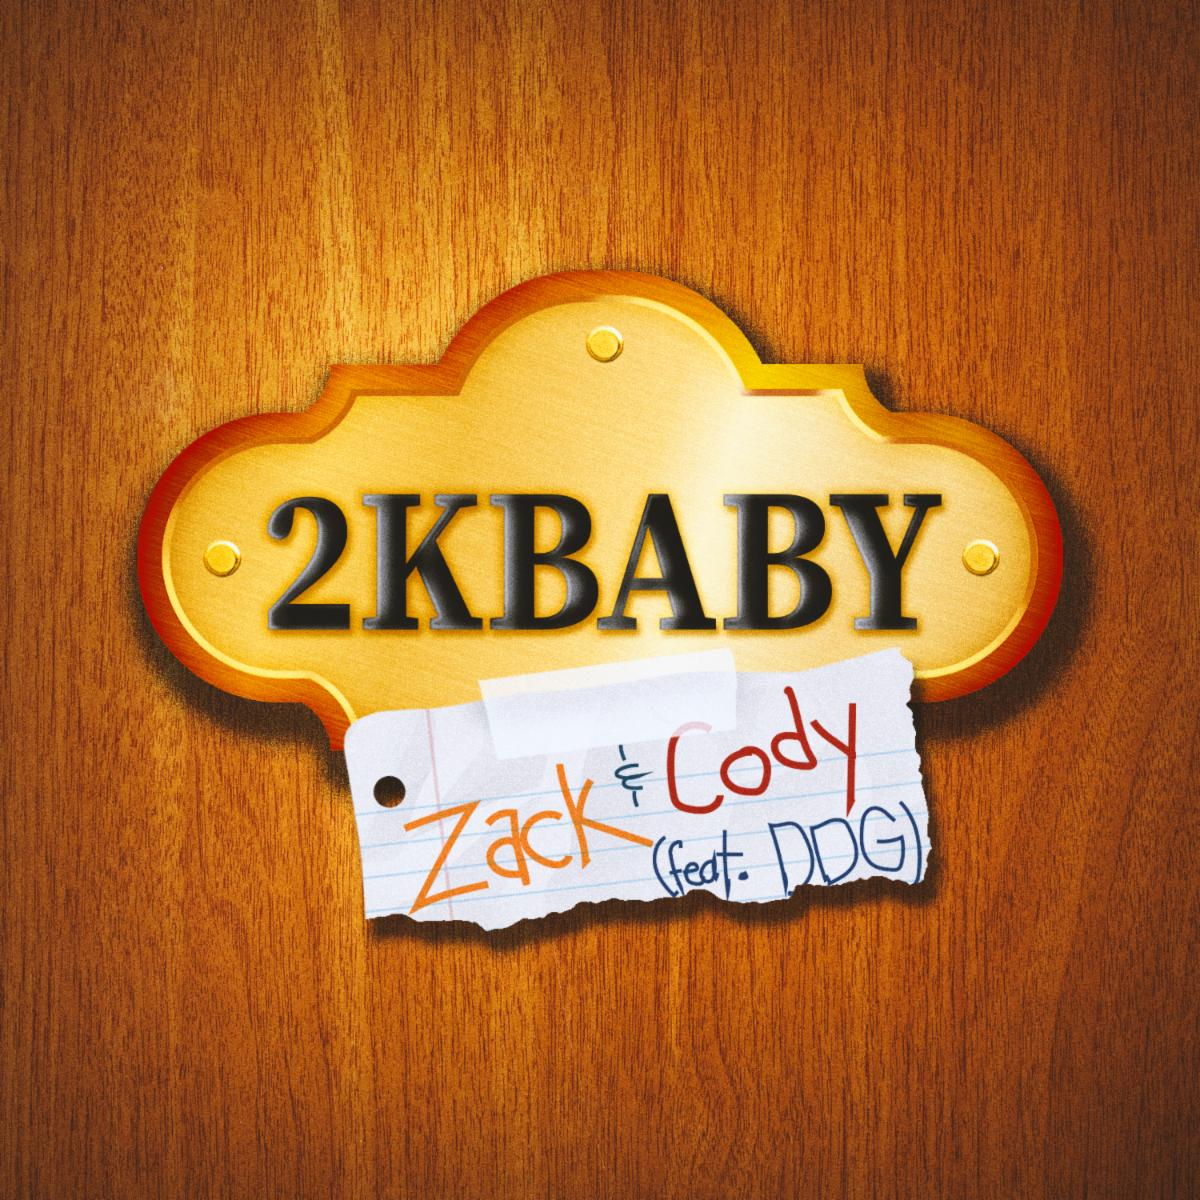 """2KBABY AND DDG CELEBRATE THE SWEET LIFE ON """"ZACK & CODY"""""""